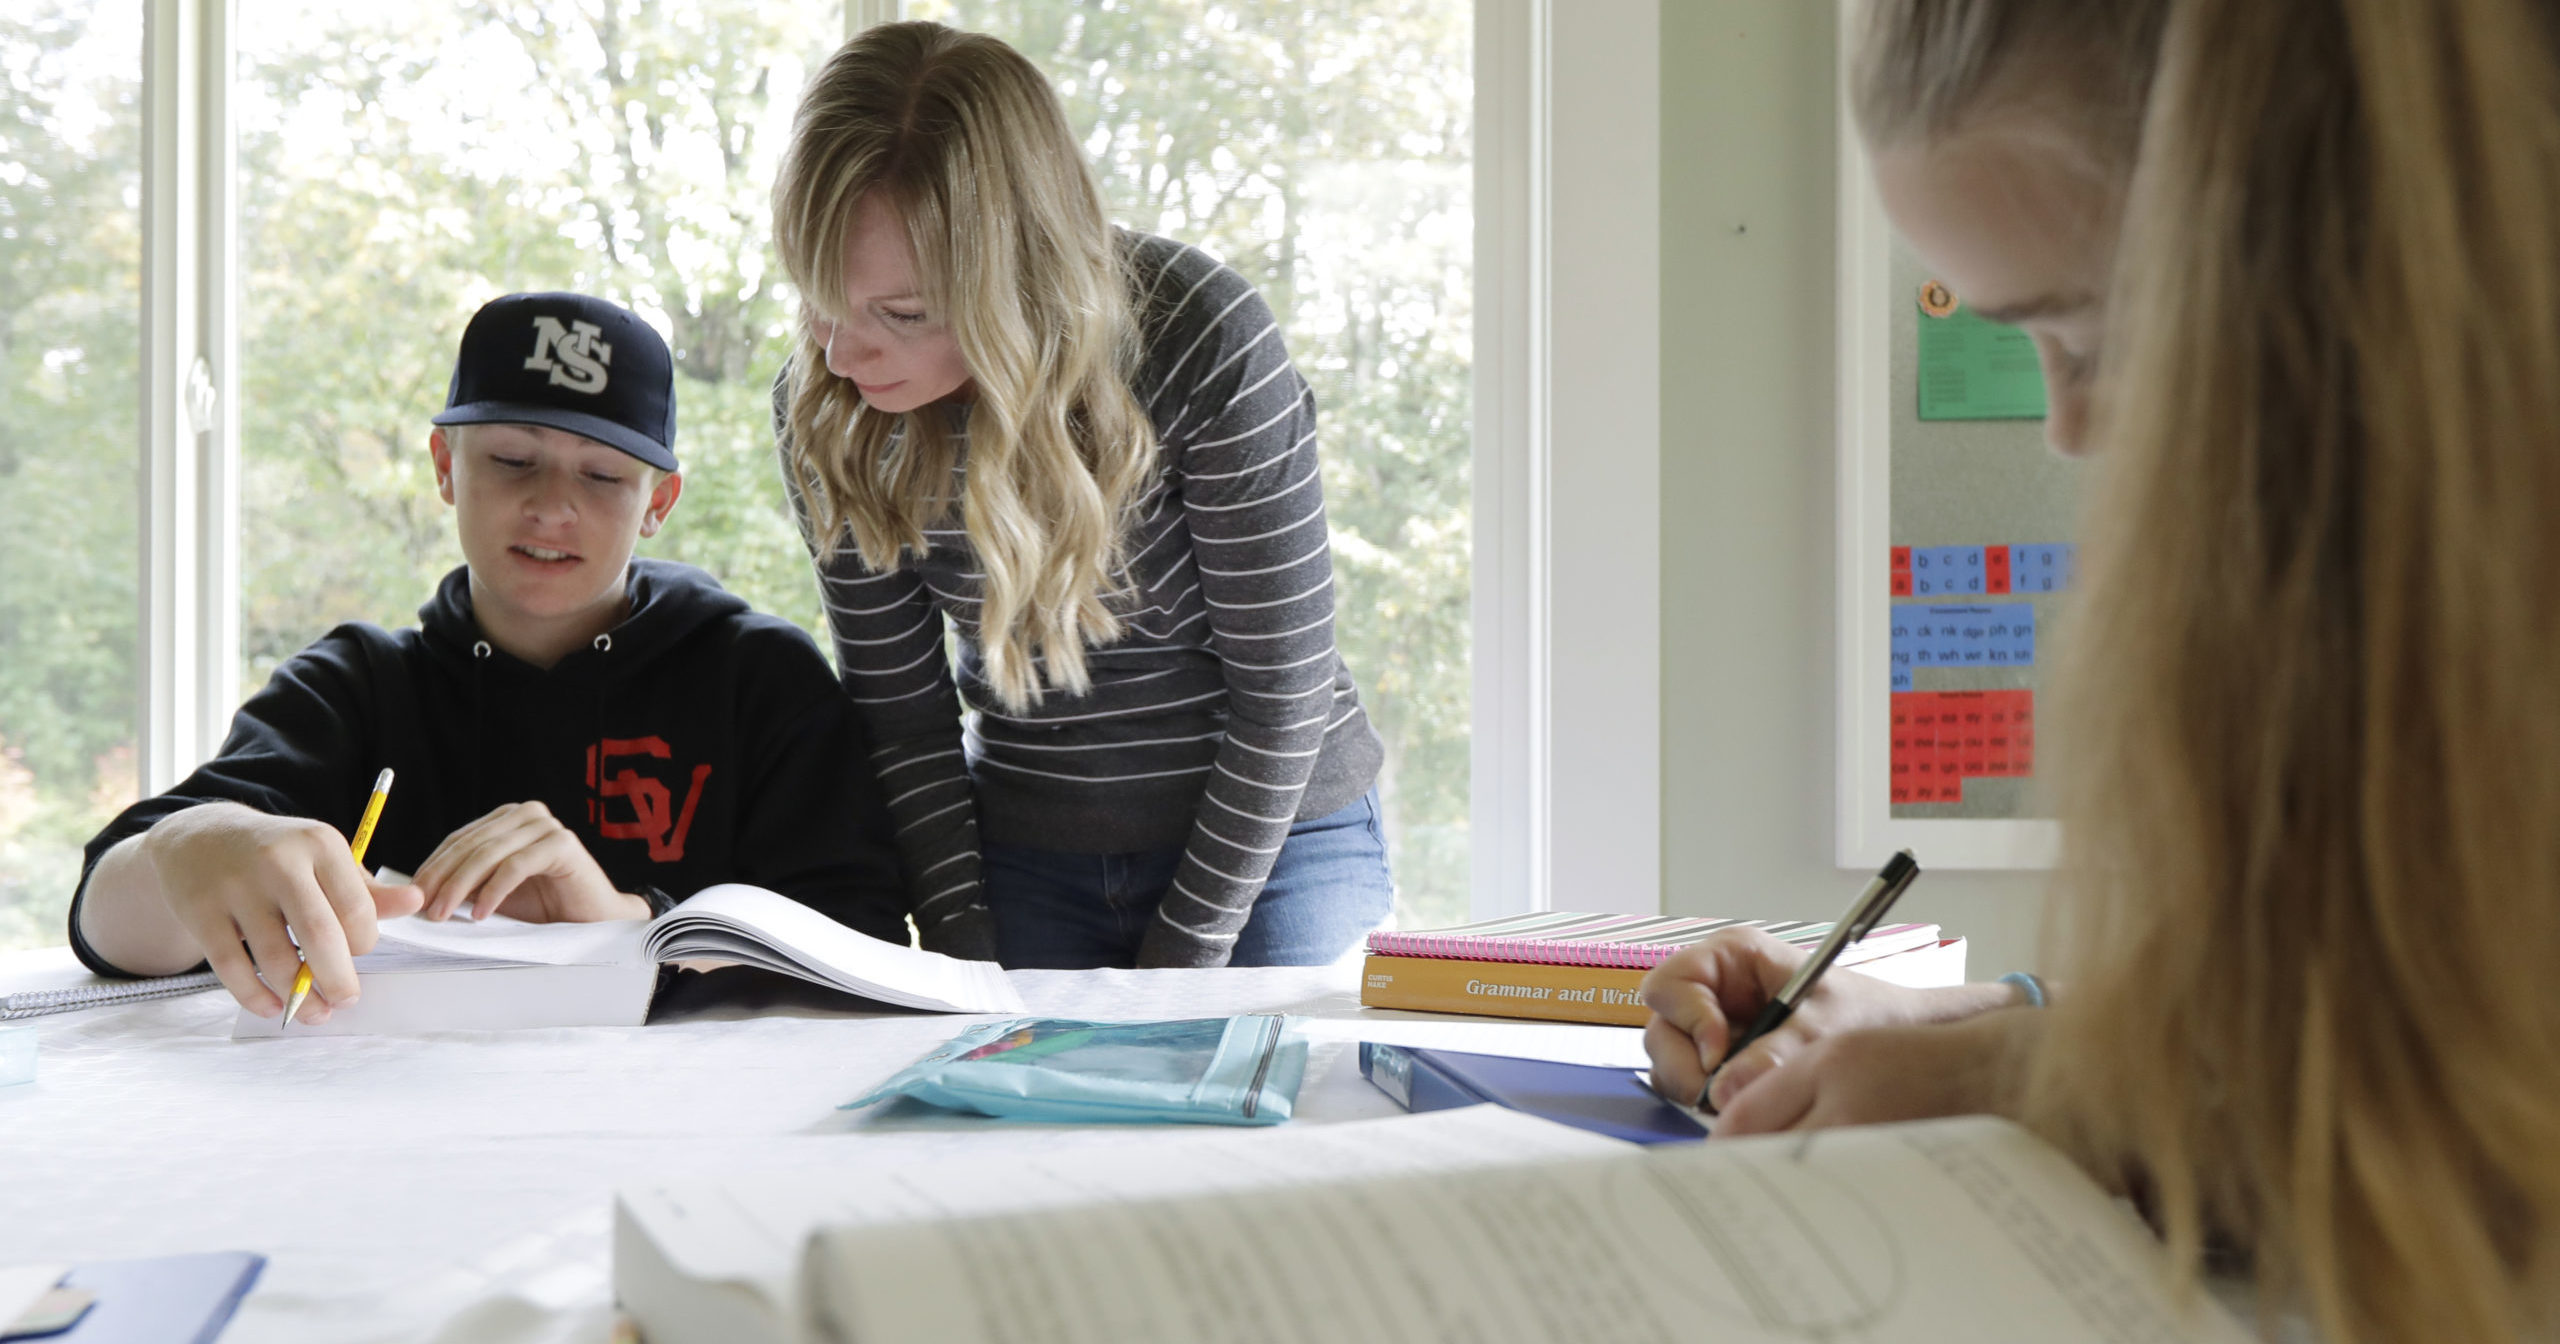 Donya Grant, center, works on a lesson with her son Kemper, 14, as her daughter Rowyn, 11, works at right at their home in Monroe, Washington, on Oct. 9, 2019.